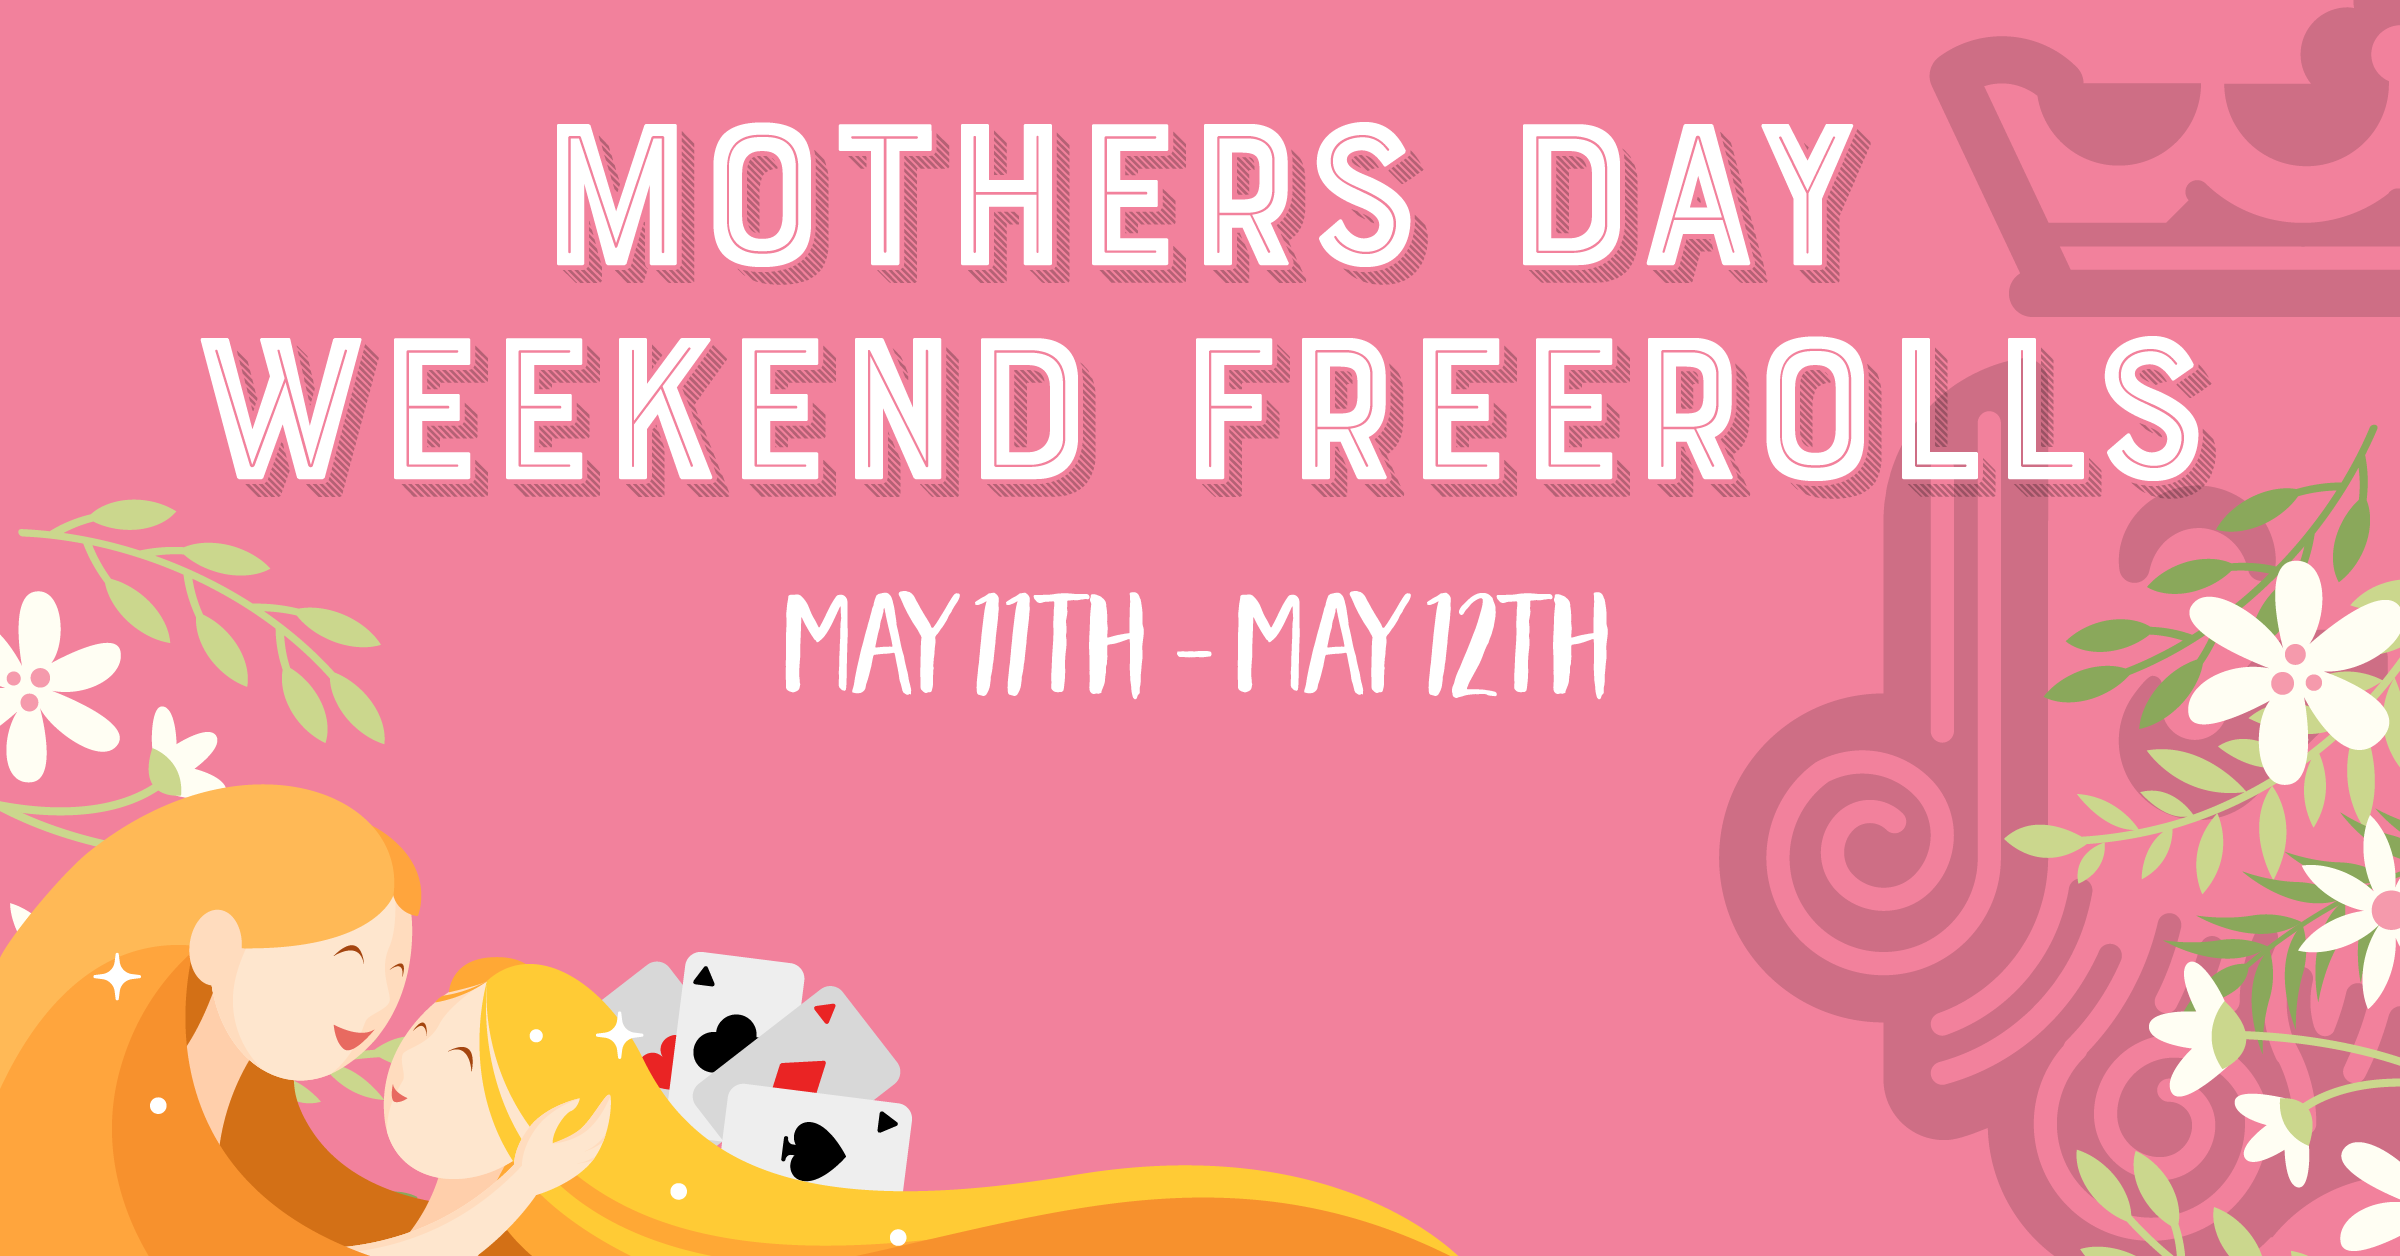 Mothers day weekend freeolls %28870 x 160%29 2x